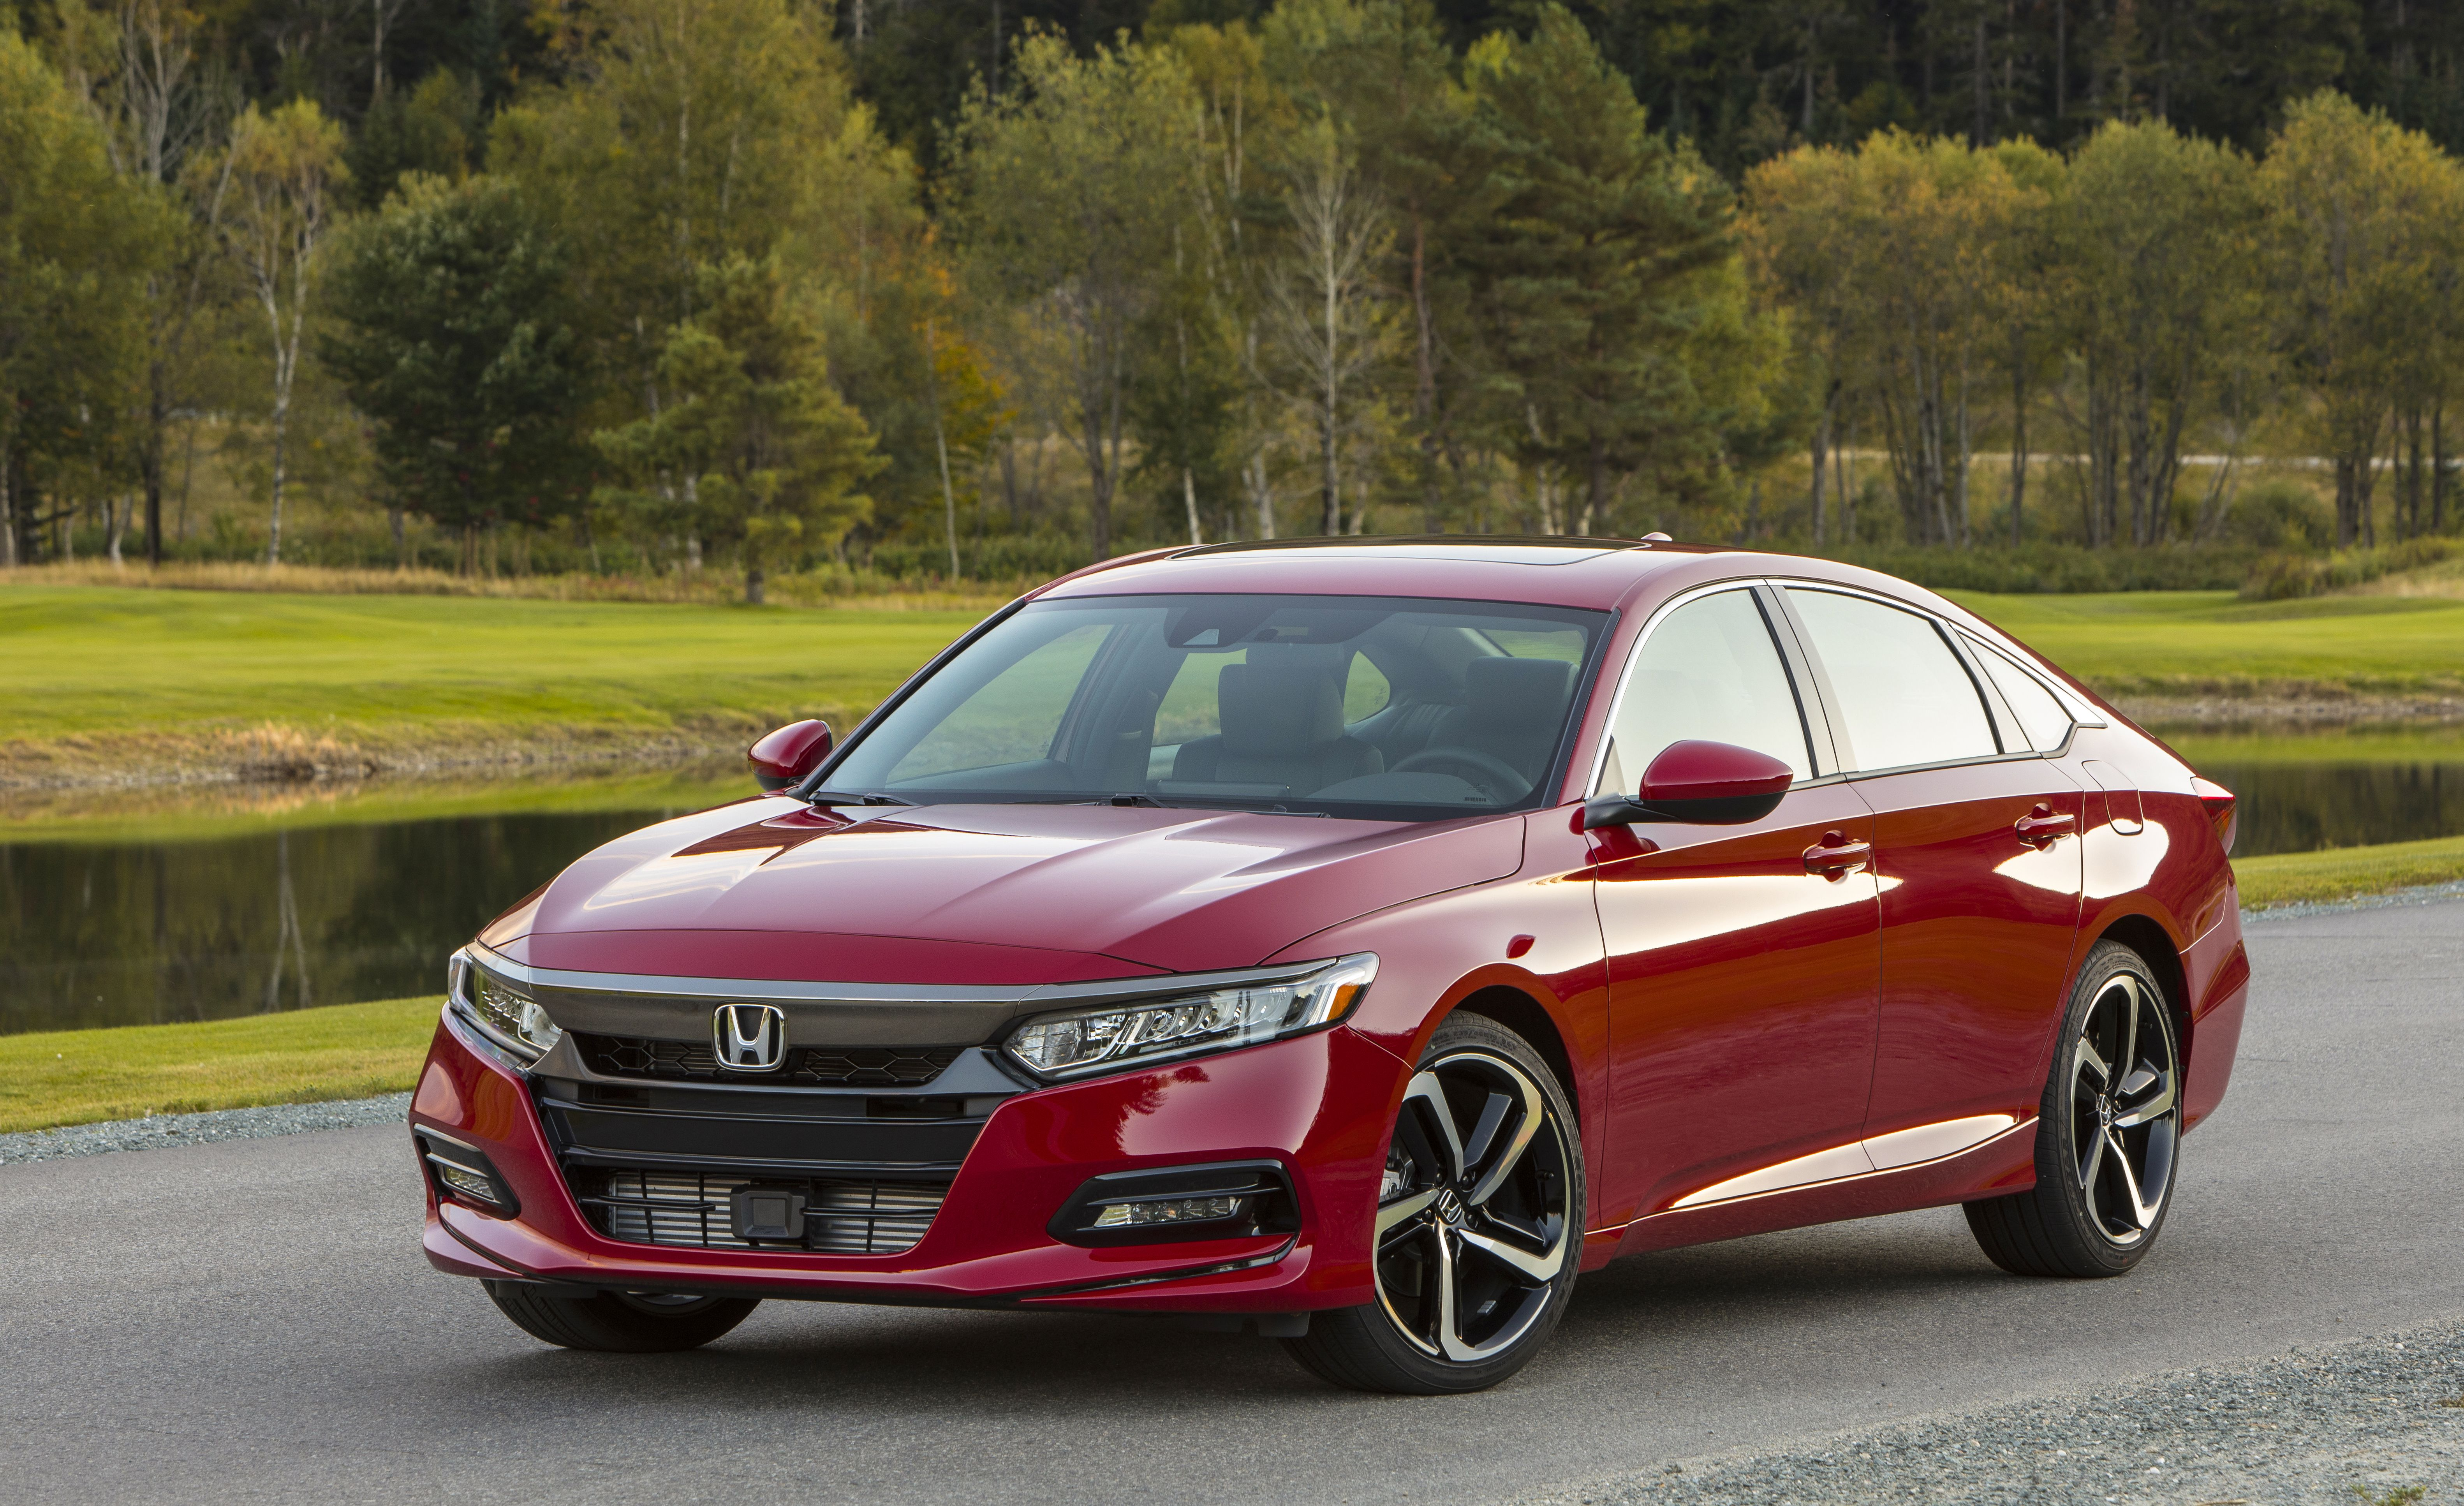 Honda Accord A Visual History Of The Sales Powerhouse Since Its 1970 Interior Birth In 1976